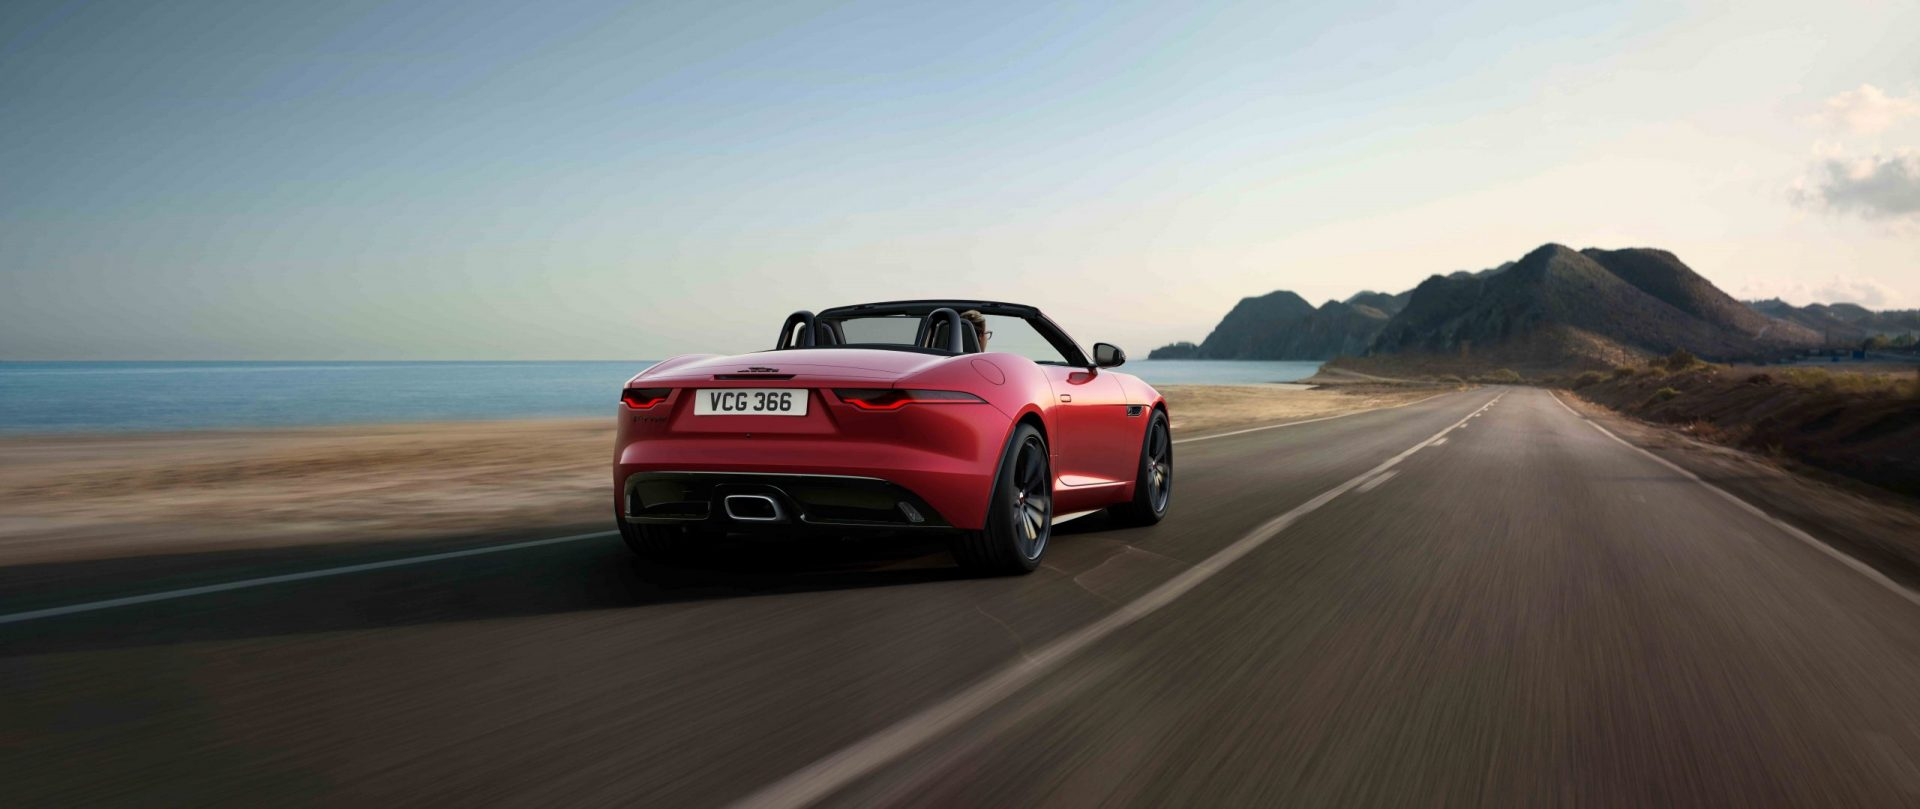 Jag F Type 22my R Dynamic Black Convertible Exterior 120421 002